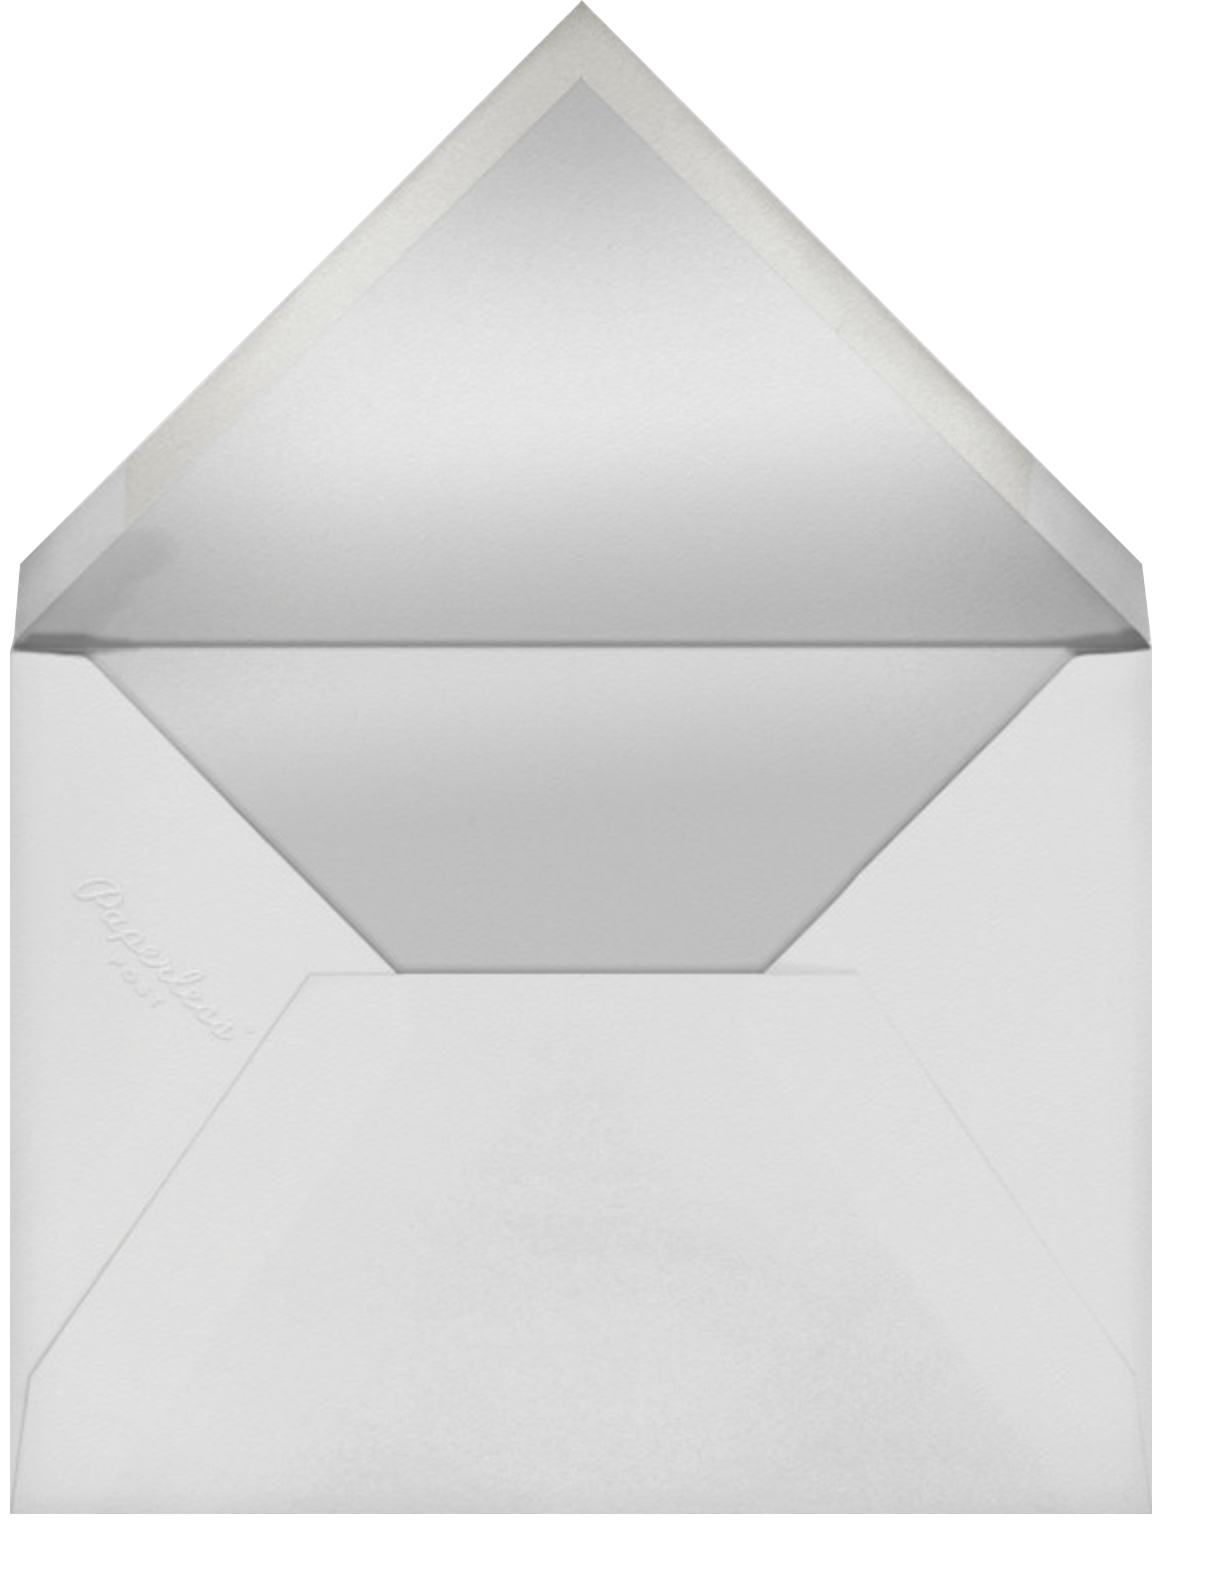 Ties - Paperless Post - Father's Day - envelope back